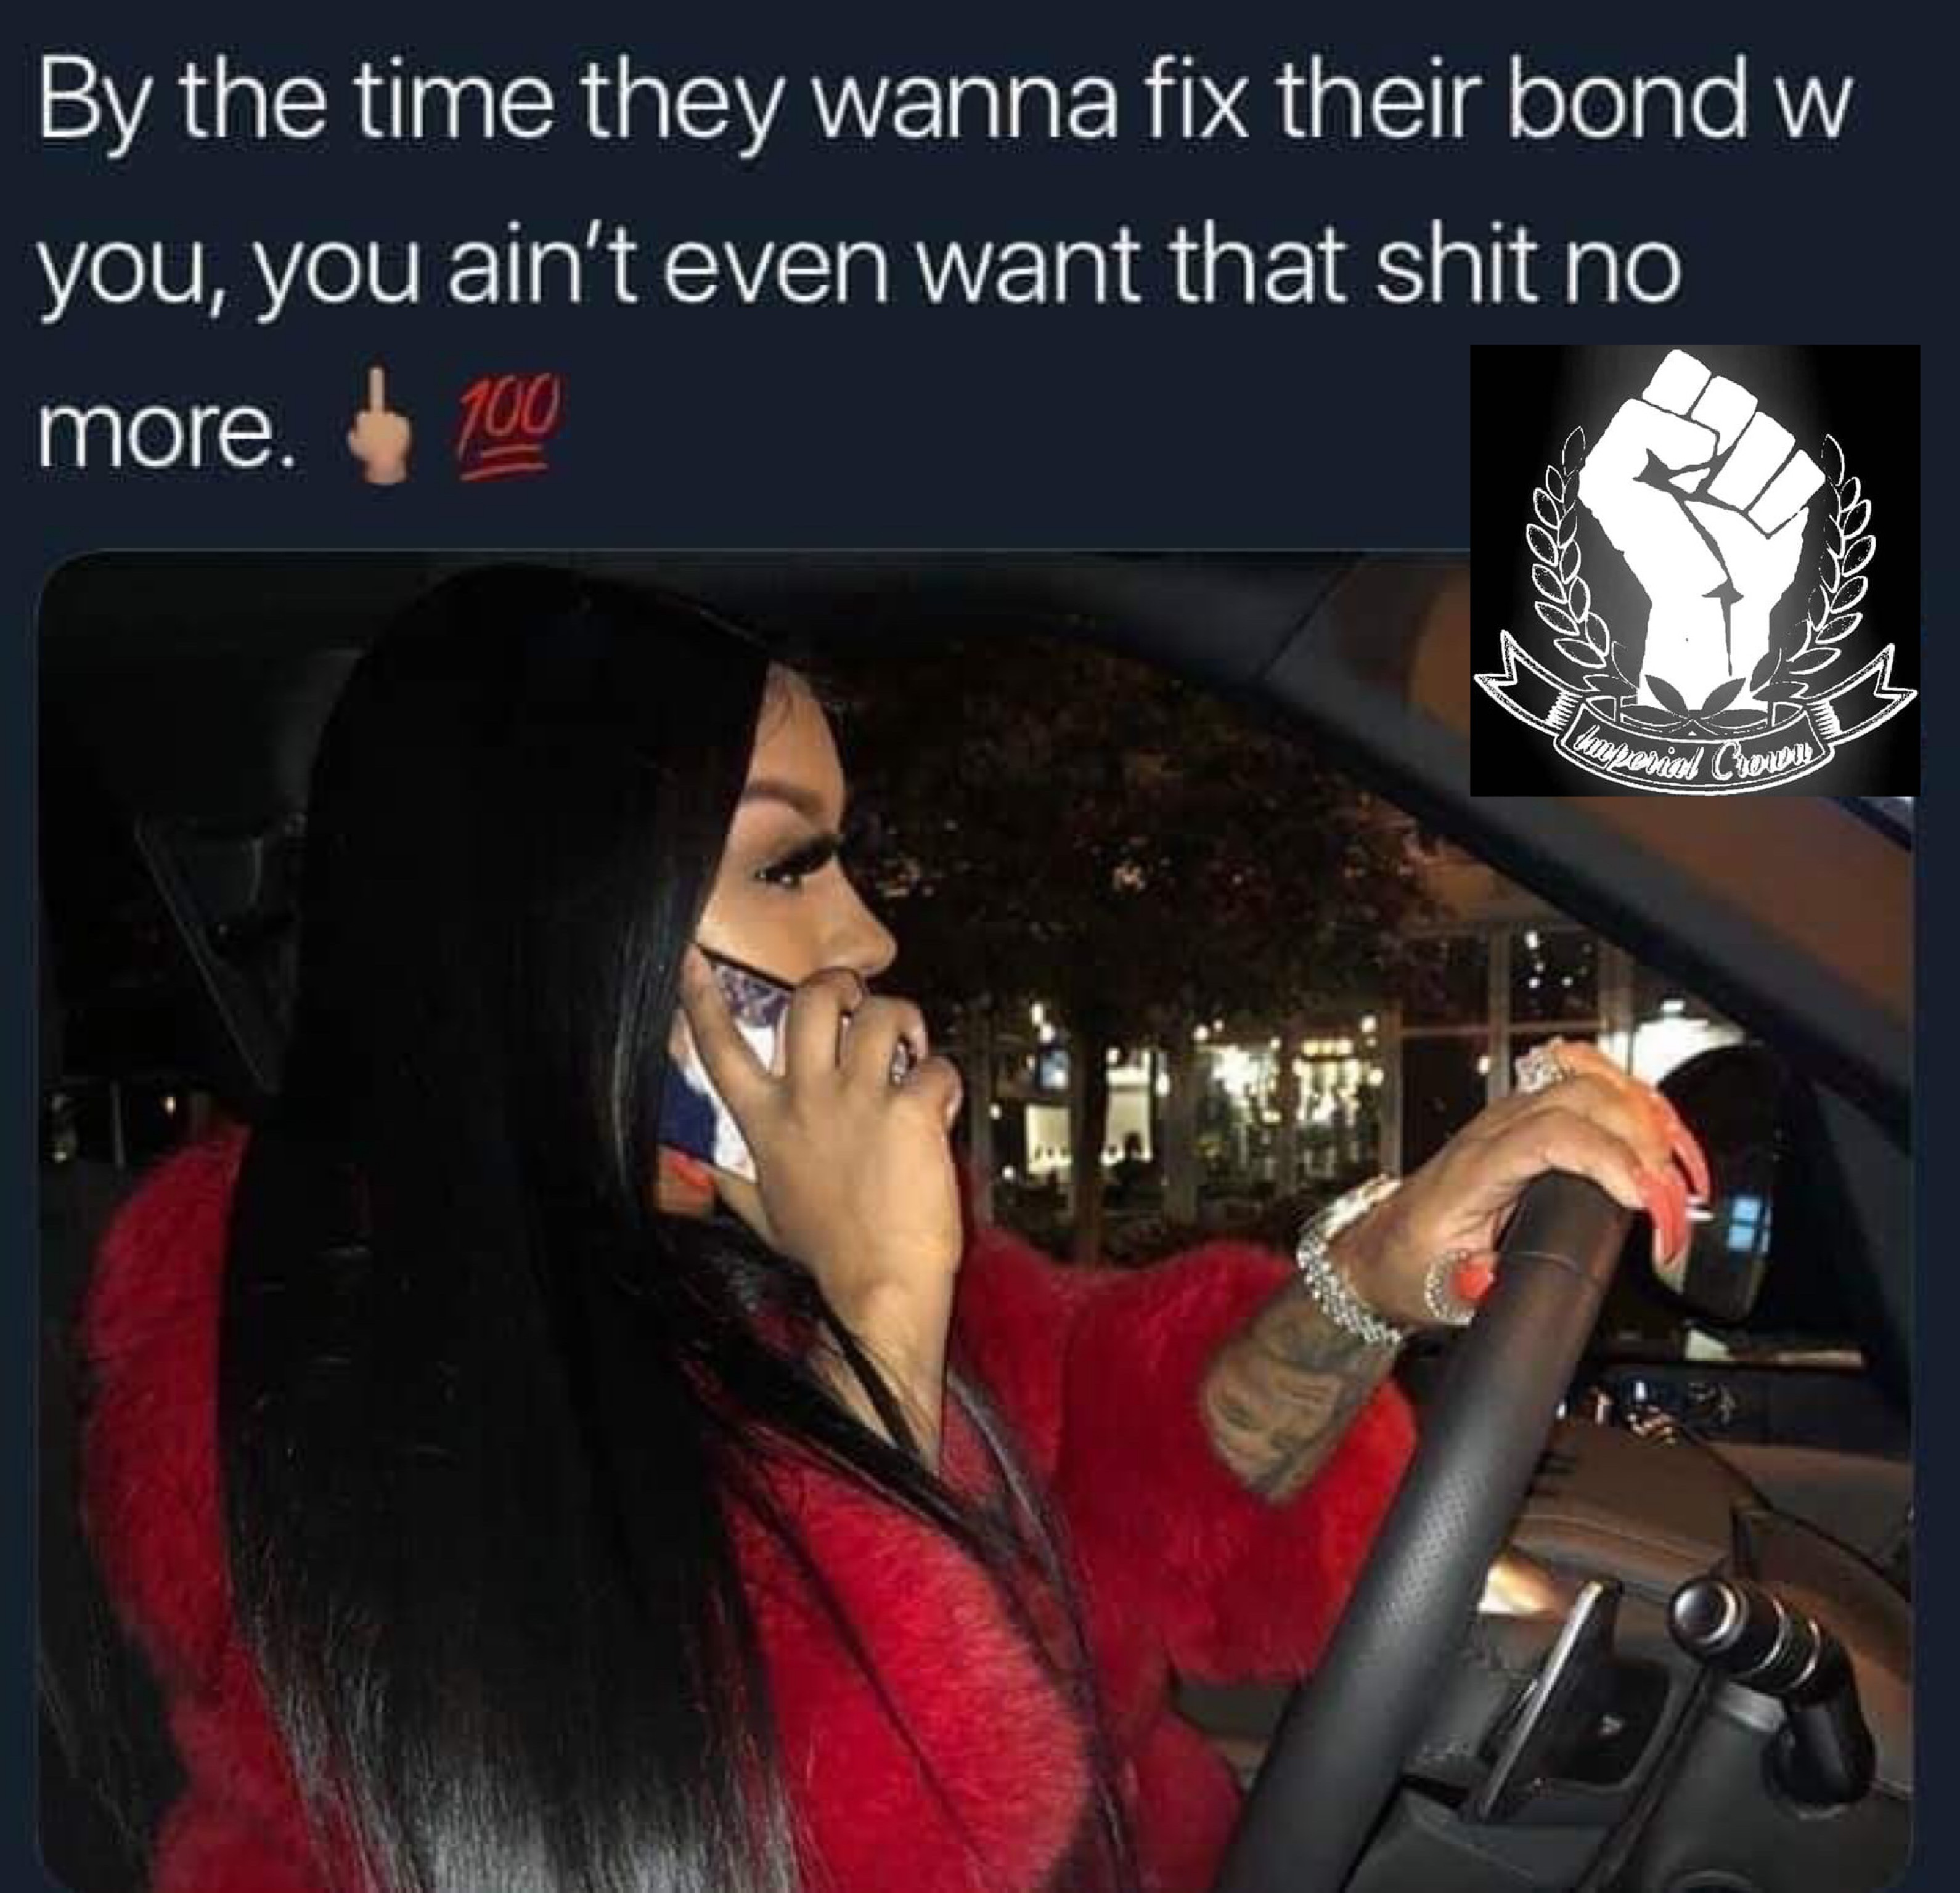 By the time they wanna fix their bond w you, you ain't even